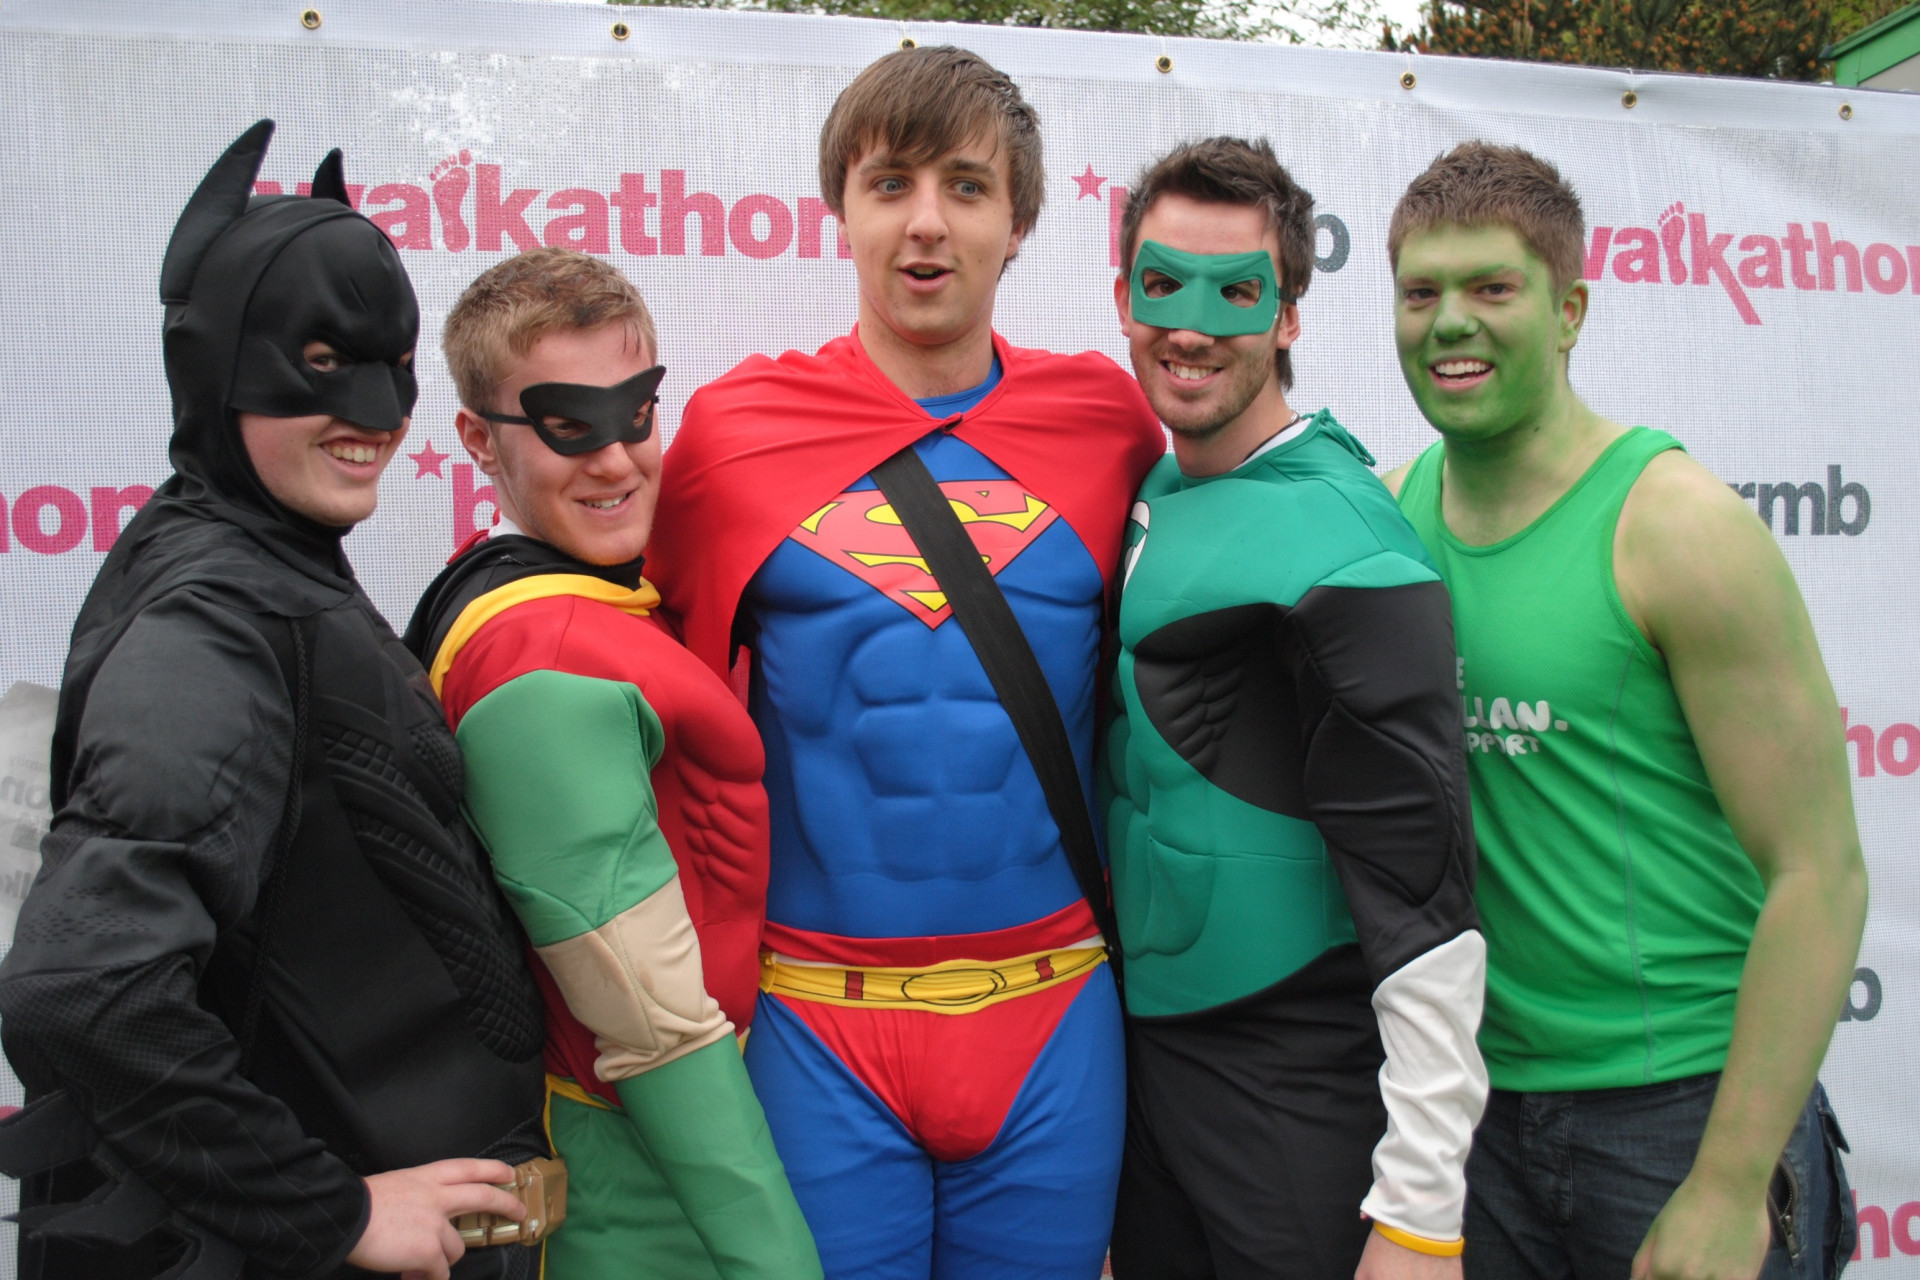 Walkathon 2011 - Superheroes